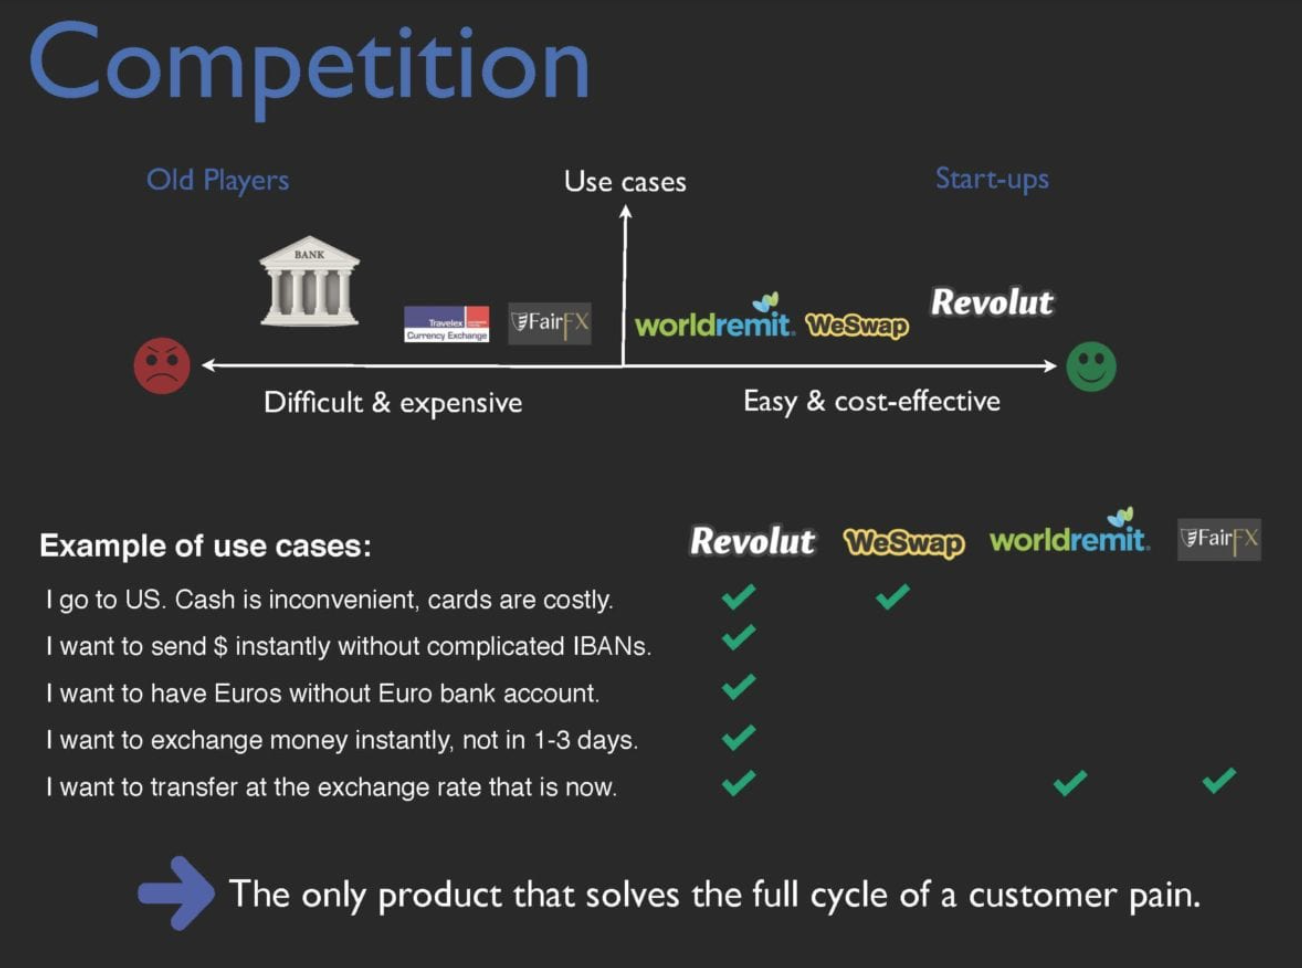 Why Revolut is a better option compared to the existing solutions in thei pitch to investors